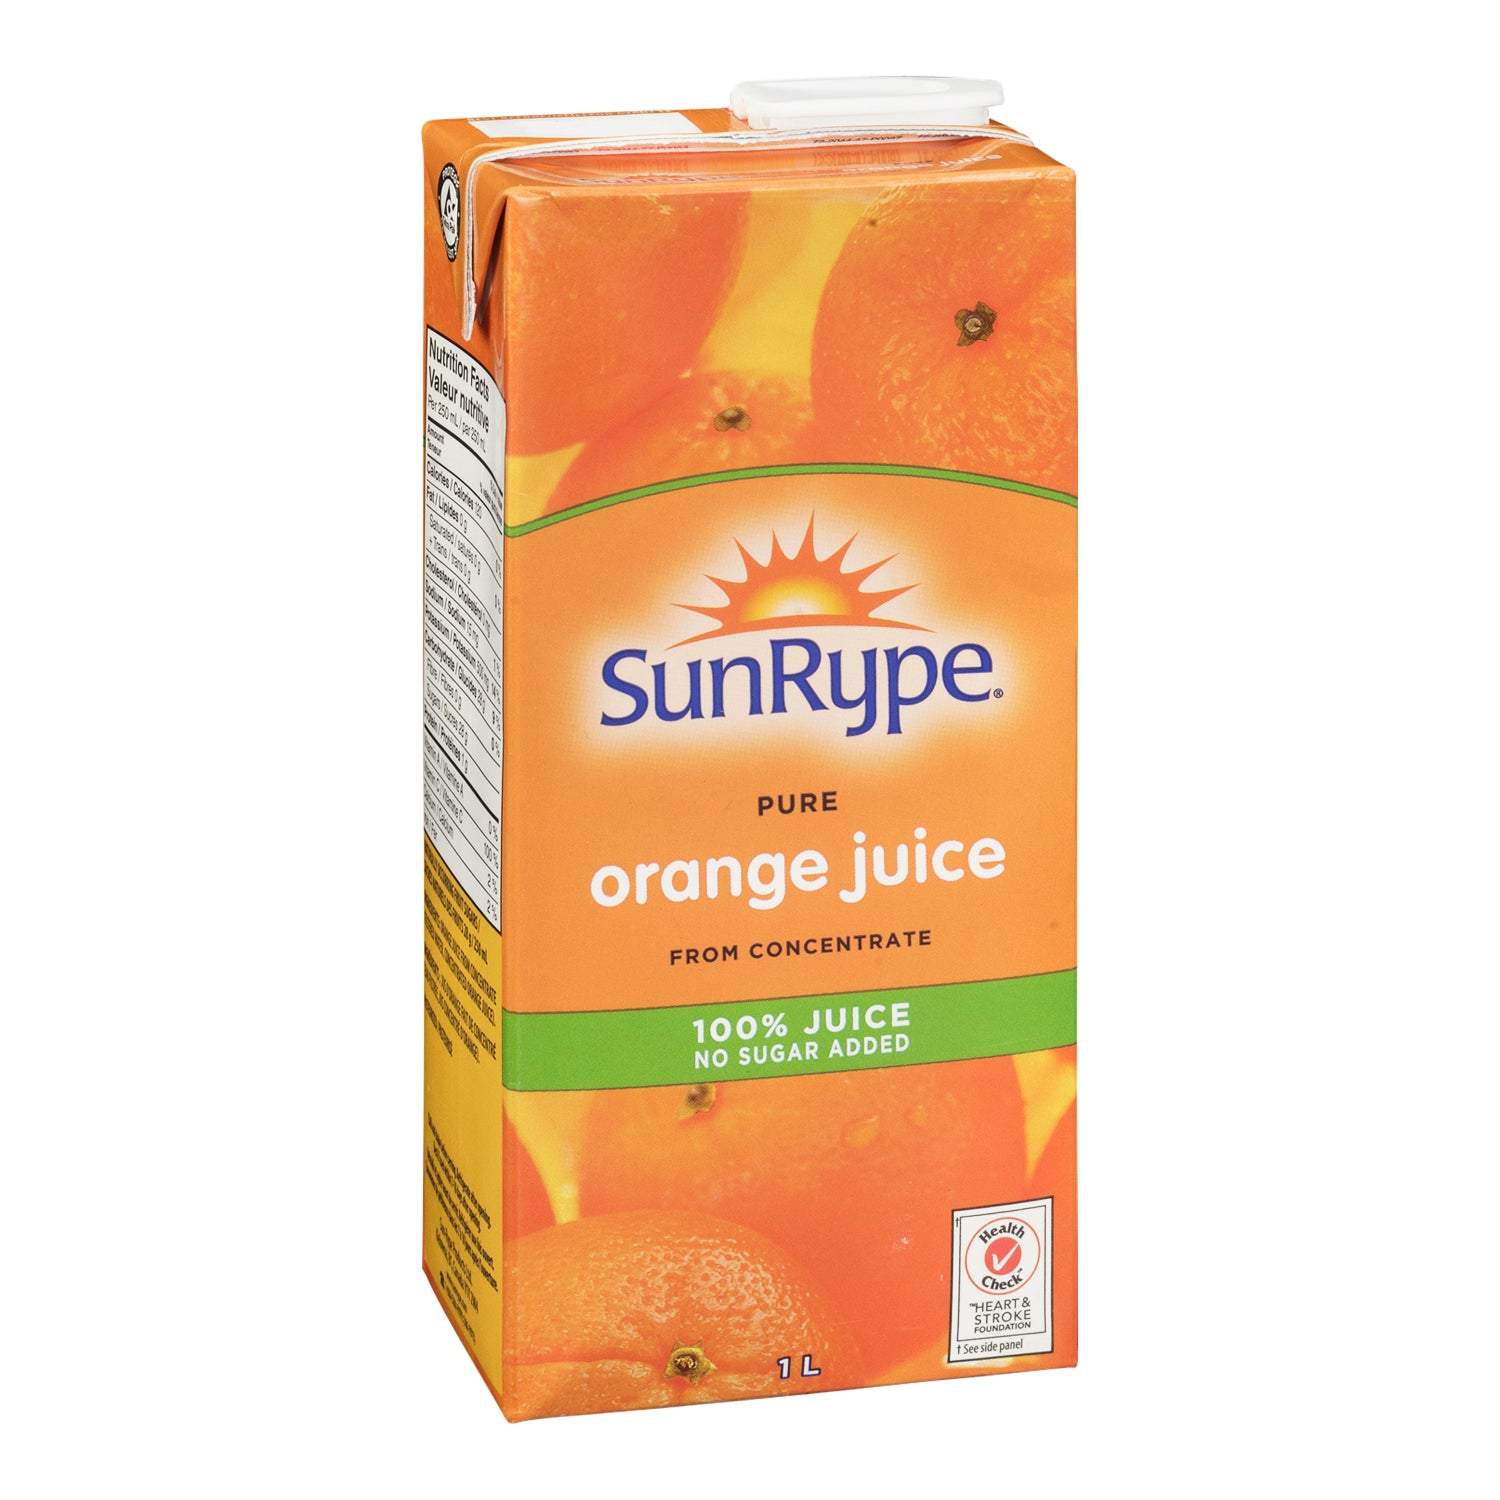 Sunrype Unsweetened Orange Juice 1 L - 12 Pack [$2.08/each]